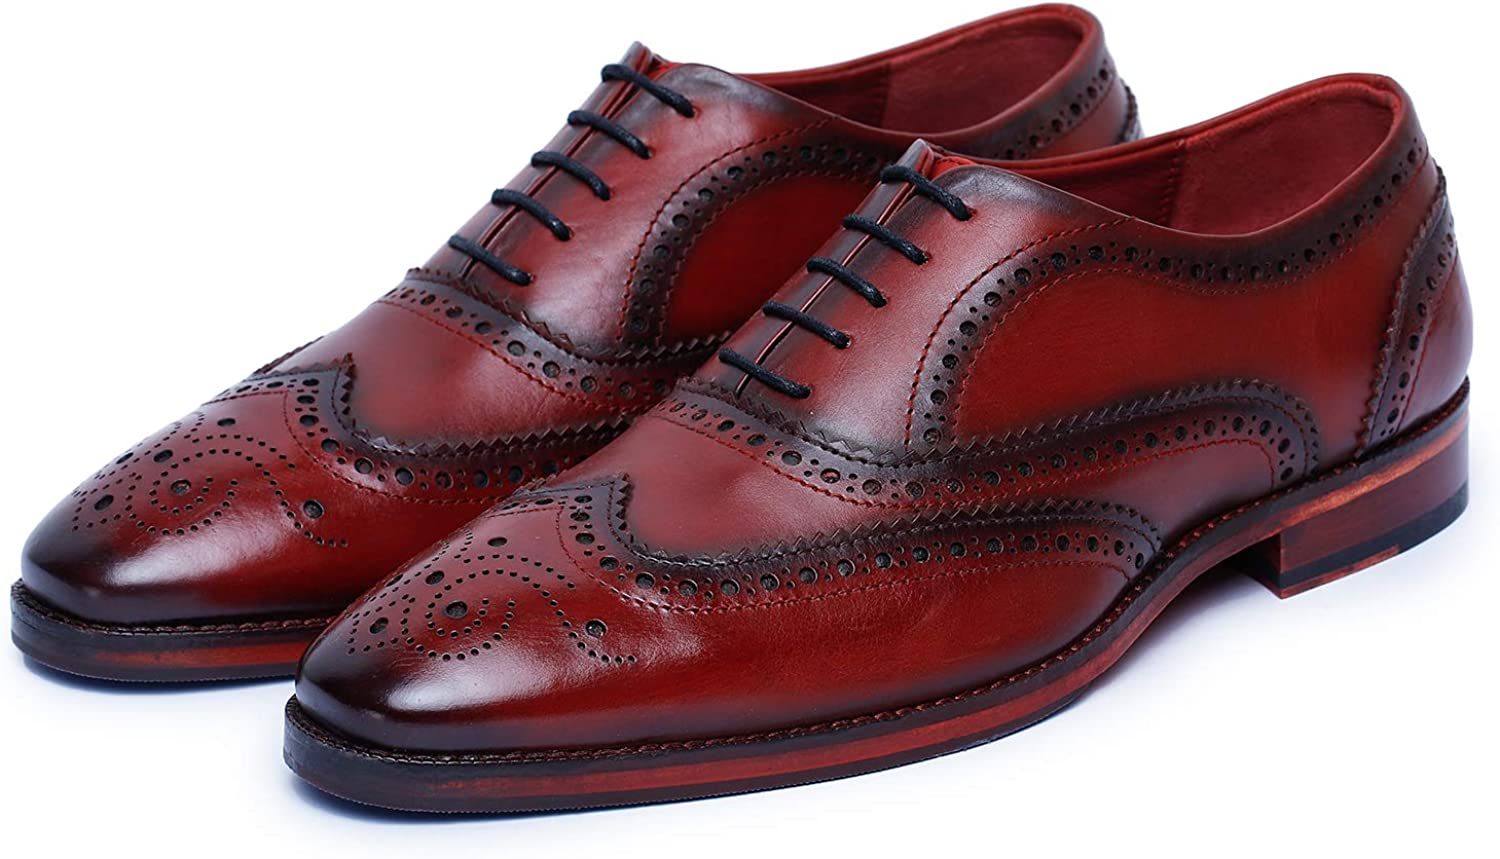 Lethato Wingtip Brogue Oxford Handcrafted Men's Genuine Leather Lace up Dress Shoes